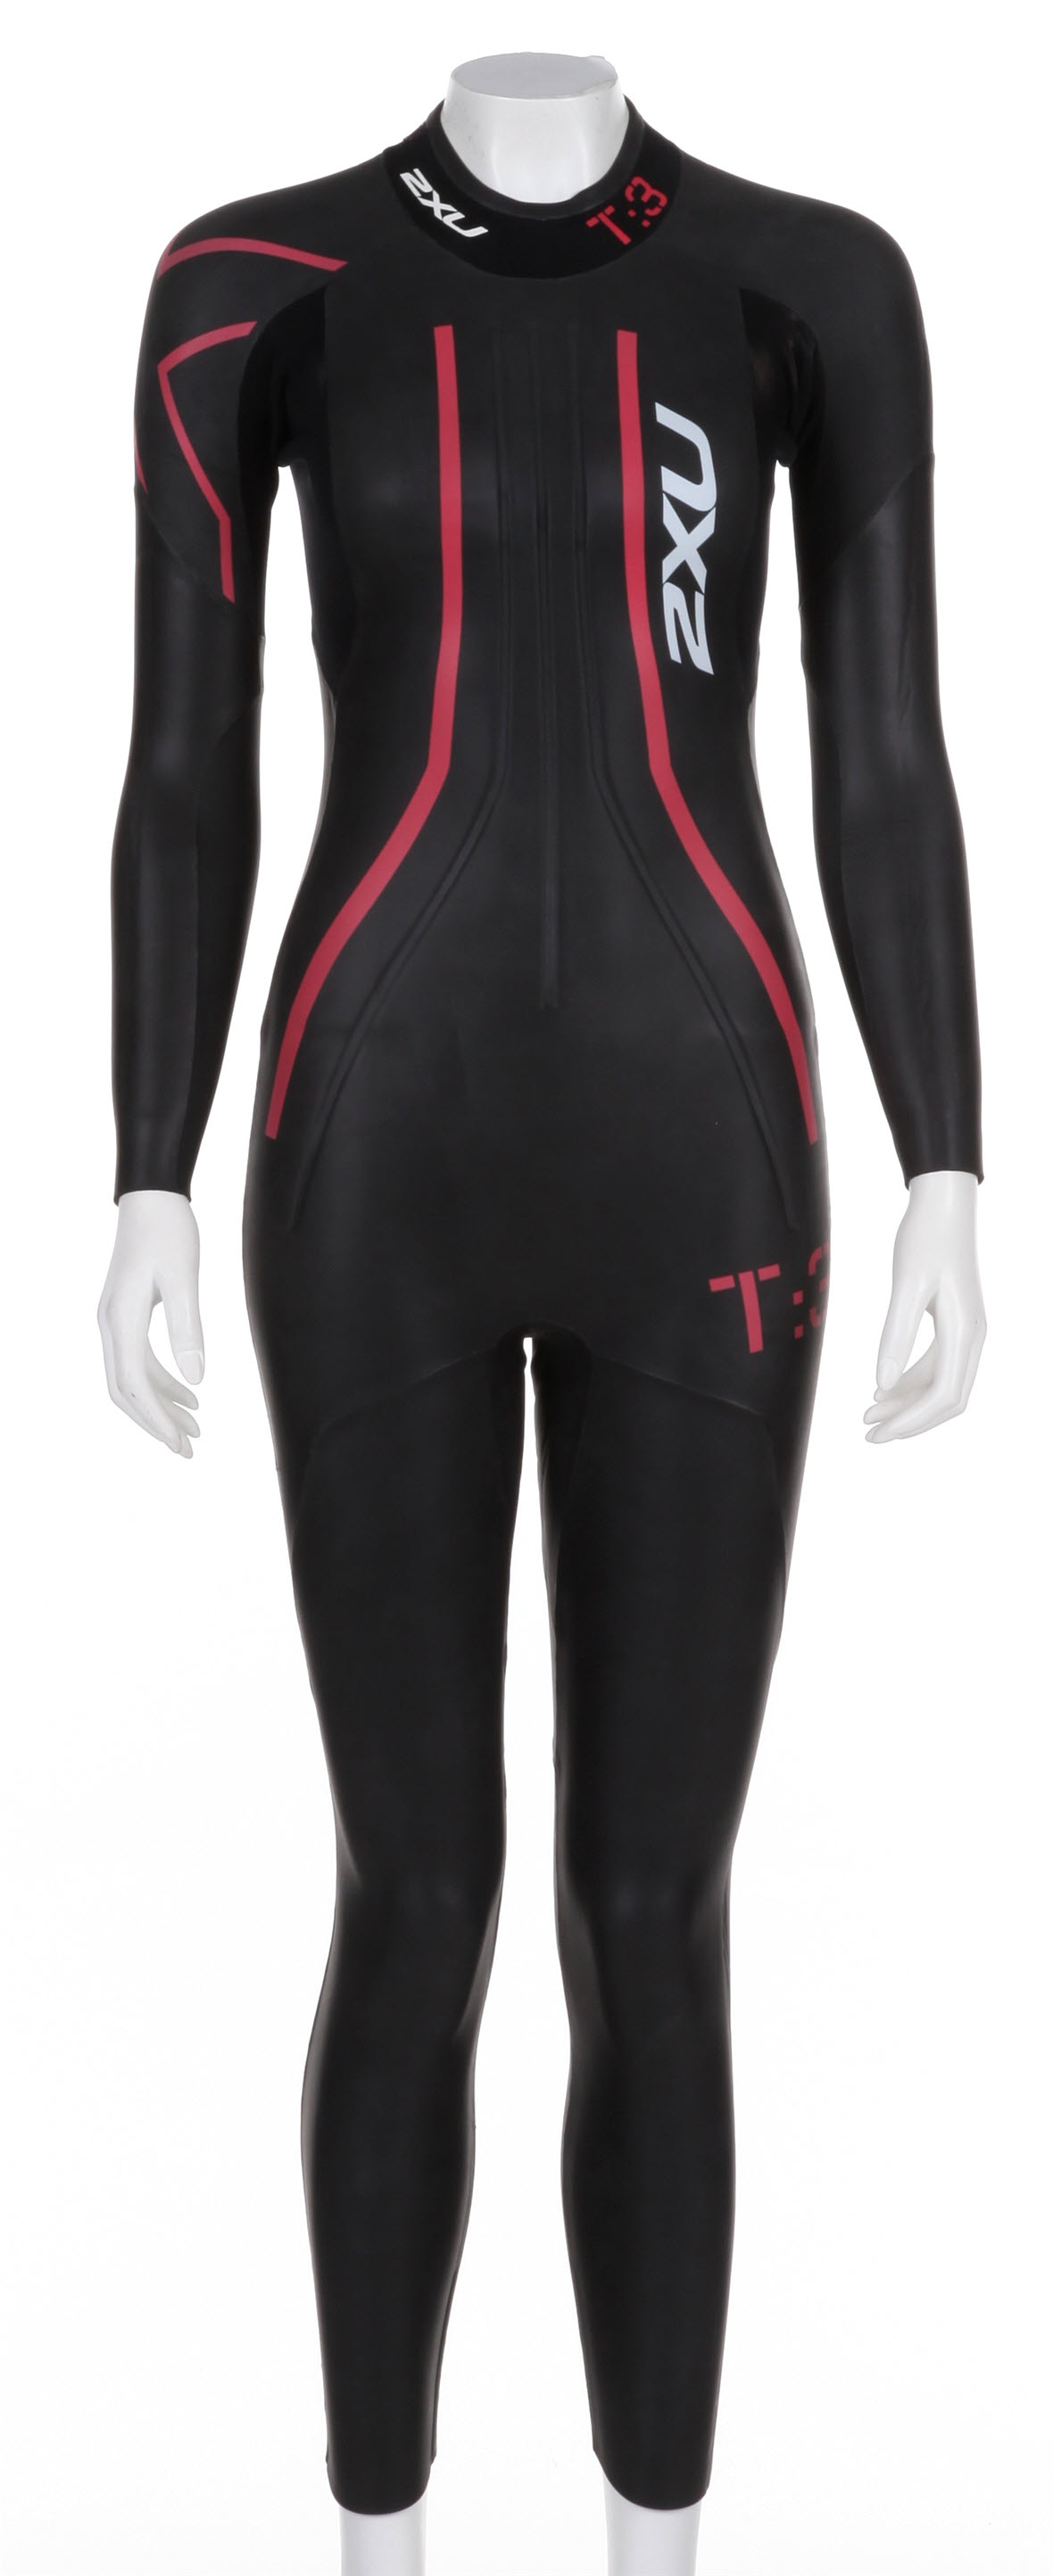 https://i0.wp.com/www.wigglestatic.com/product-media/5360066163/Ladies-T3-Team-Wetsuit-226-0101.jpg